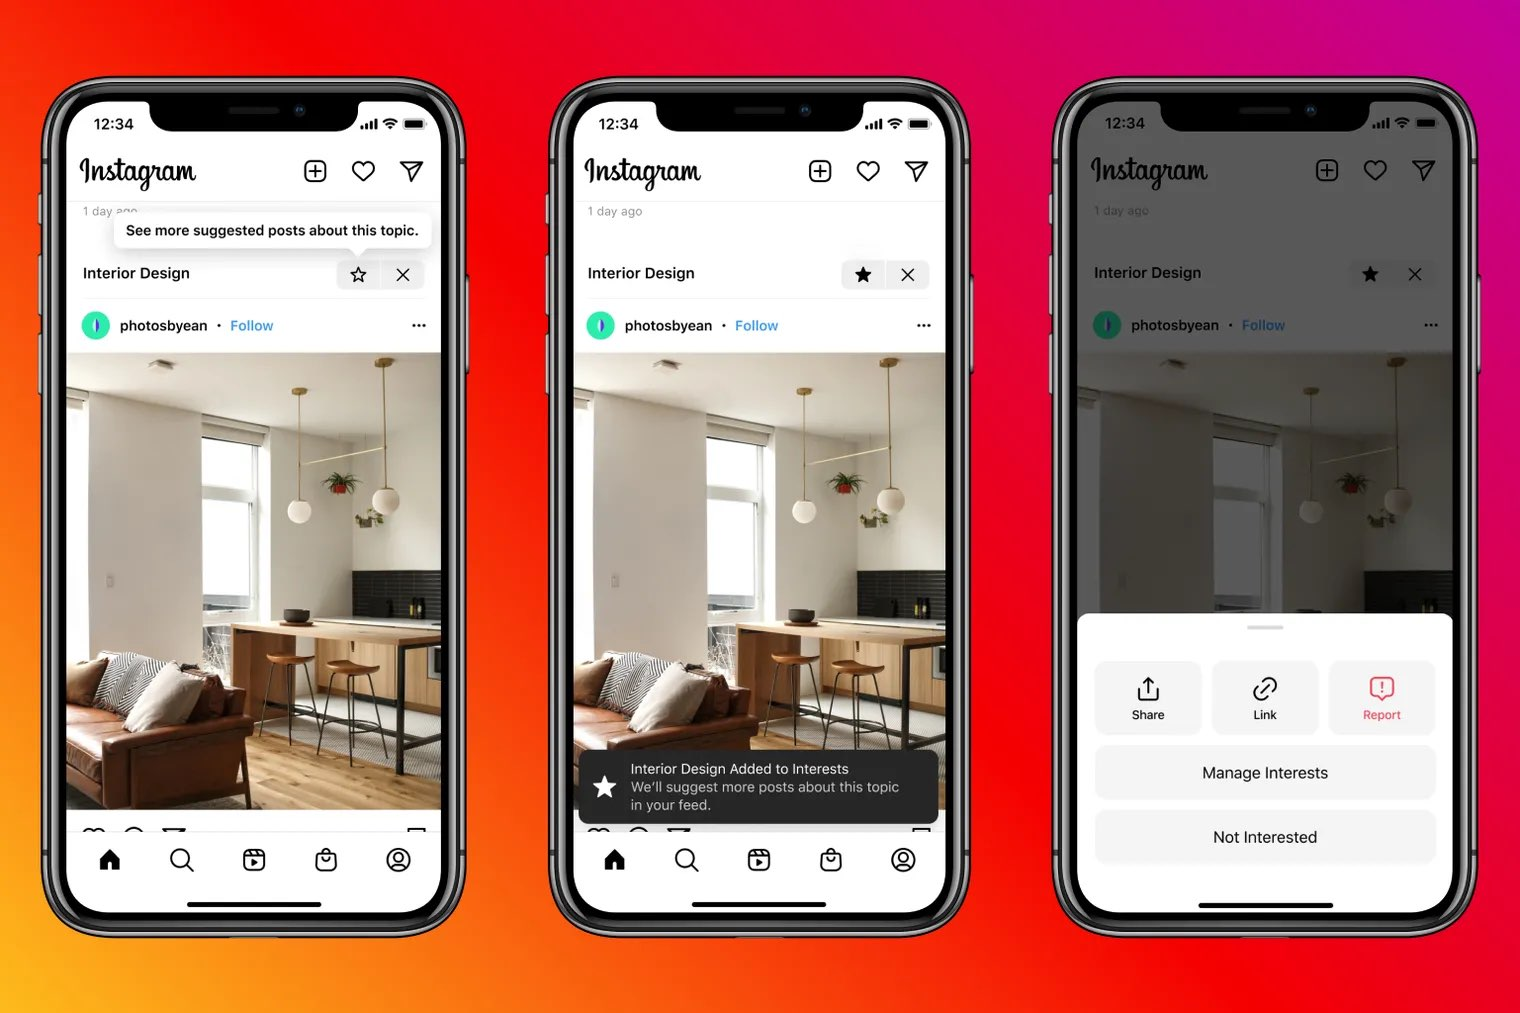 Promotional image showing controls to influence suggested posts in the main Instagram feed on iPhone